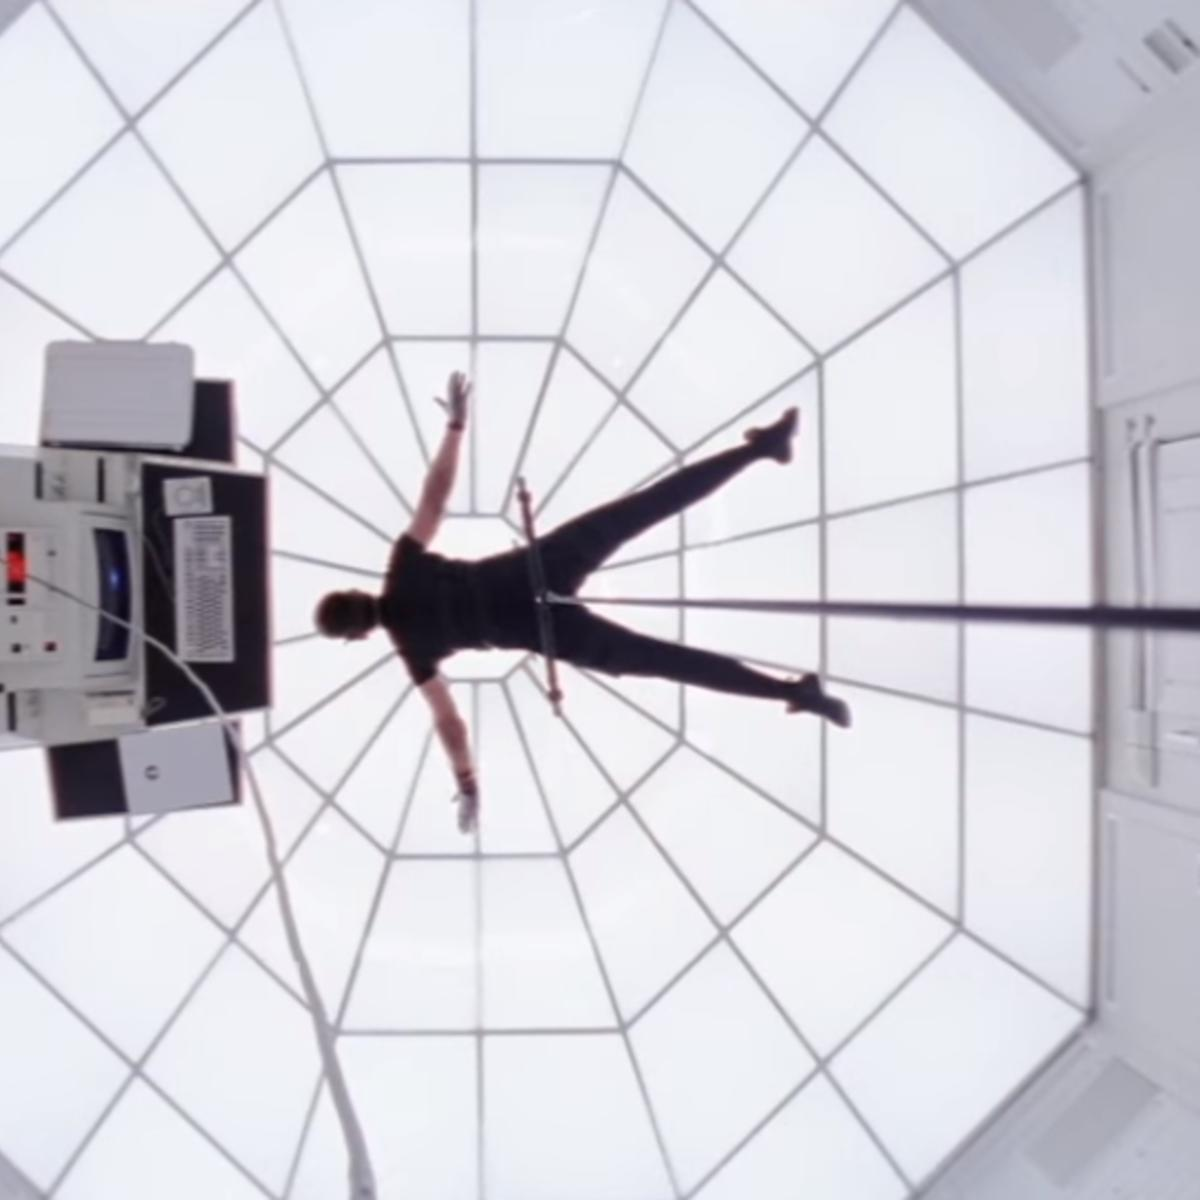 mission impossible tom cruise screen grab.PNG